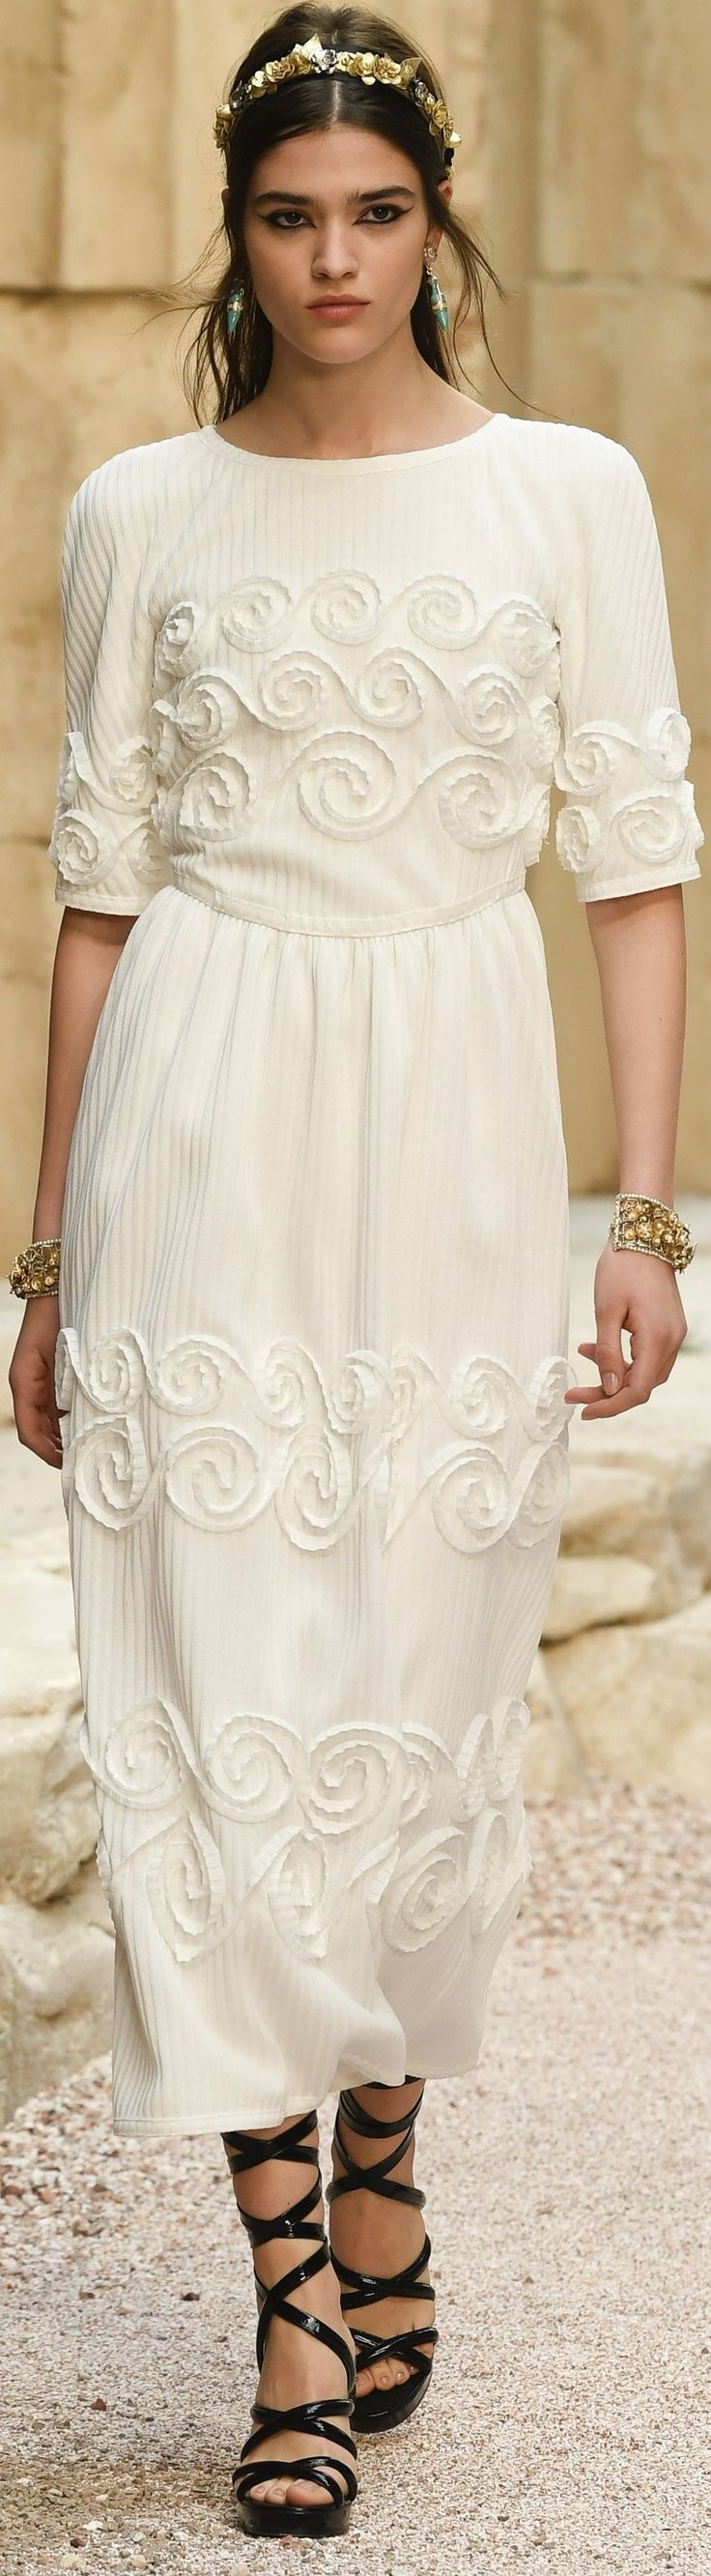 Chanel Cruise 2018. Admired by FalconFabrics.com.au